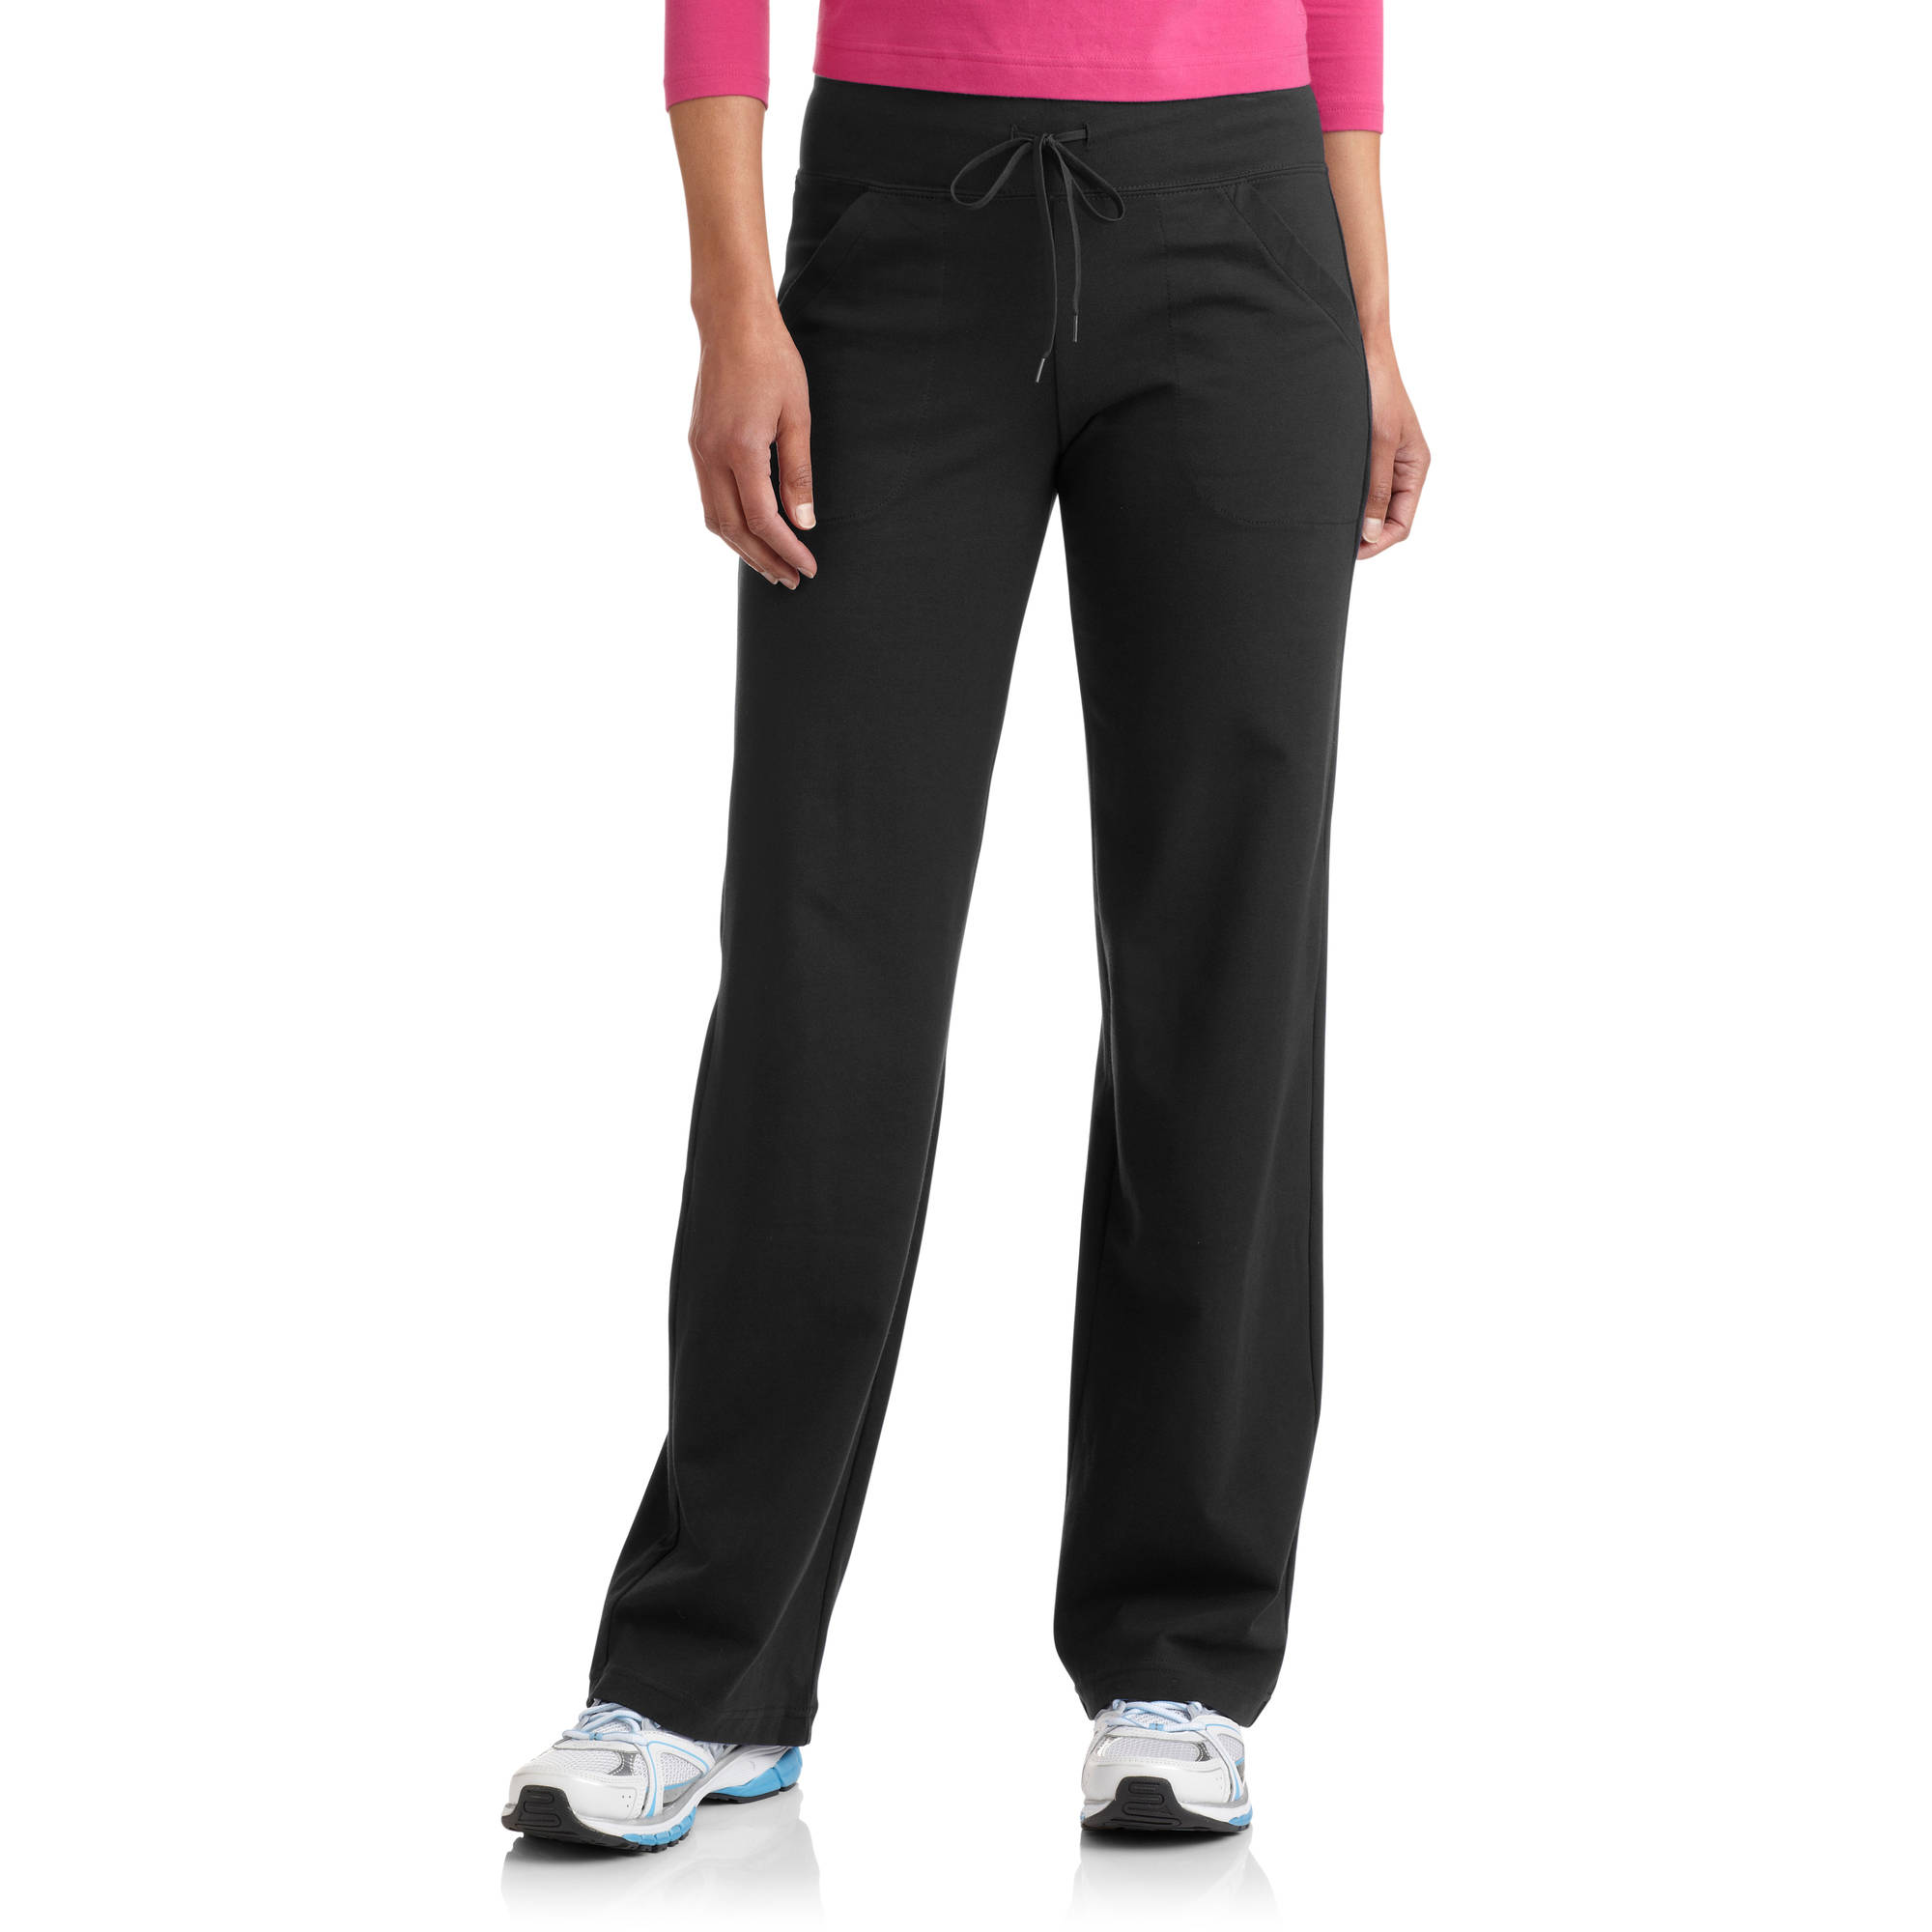 Danskin Now Women's Dri-More Core Relaxed Pants available in ...